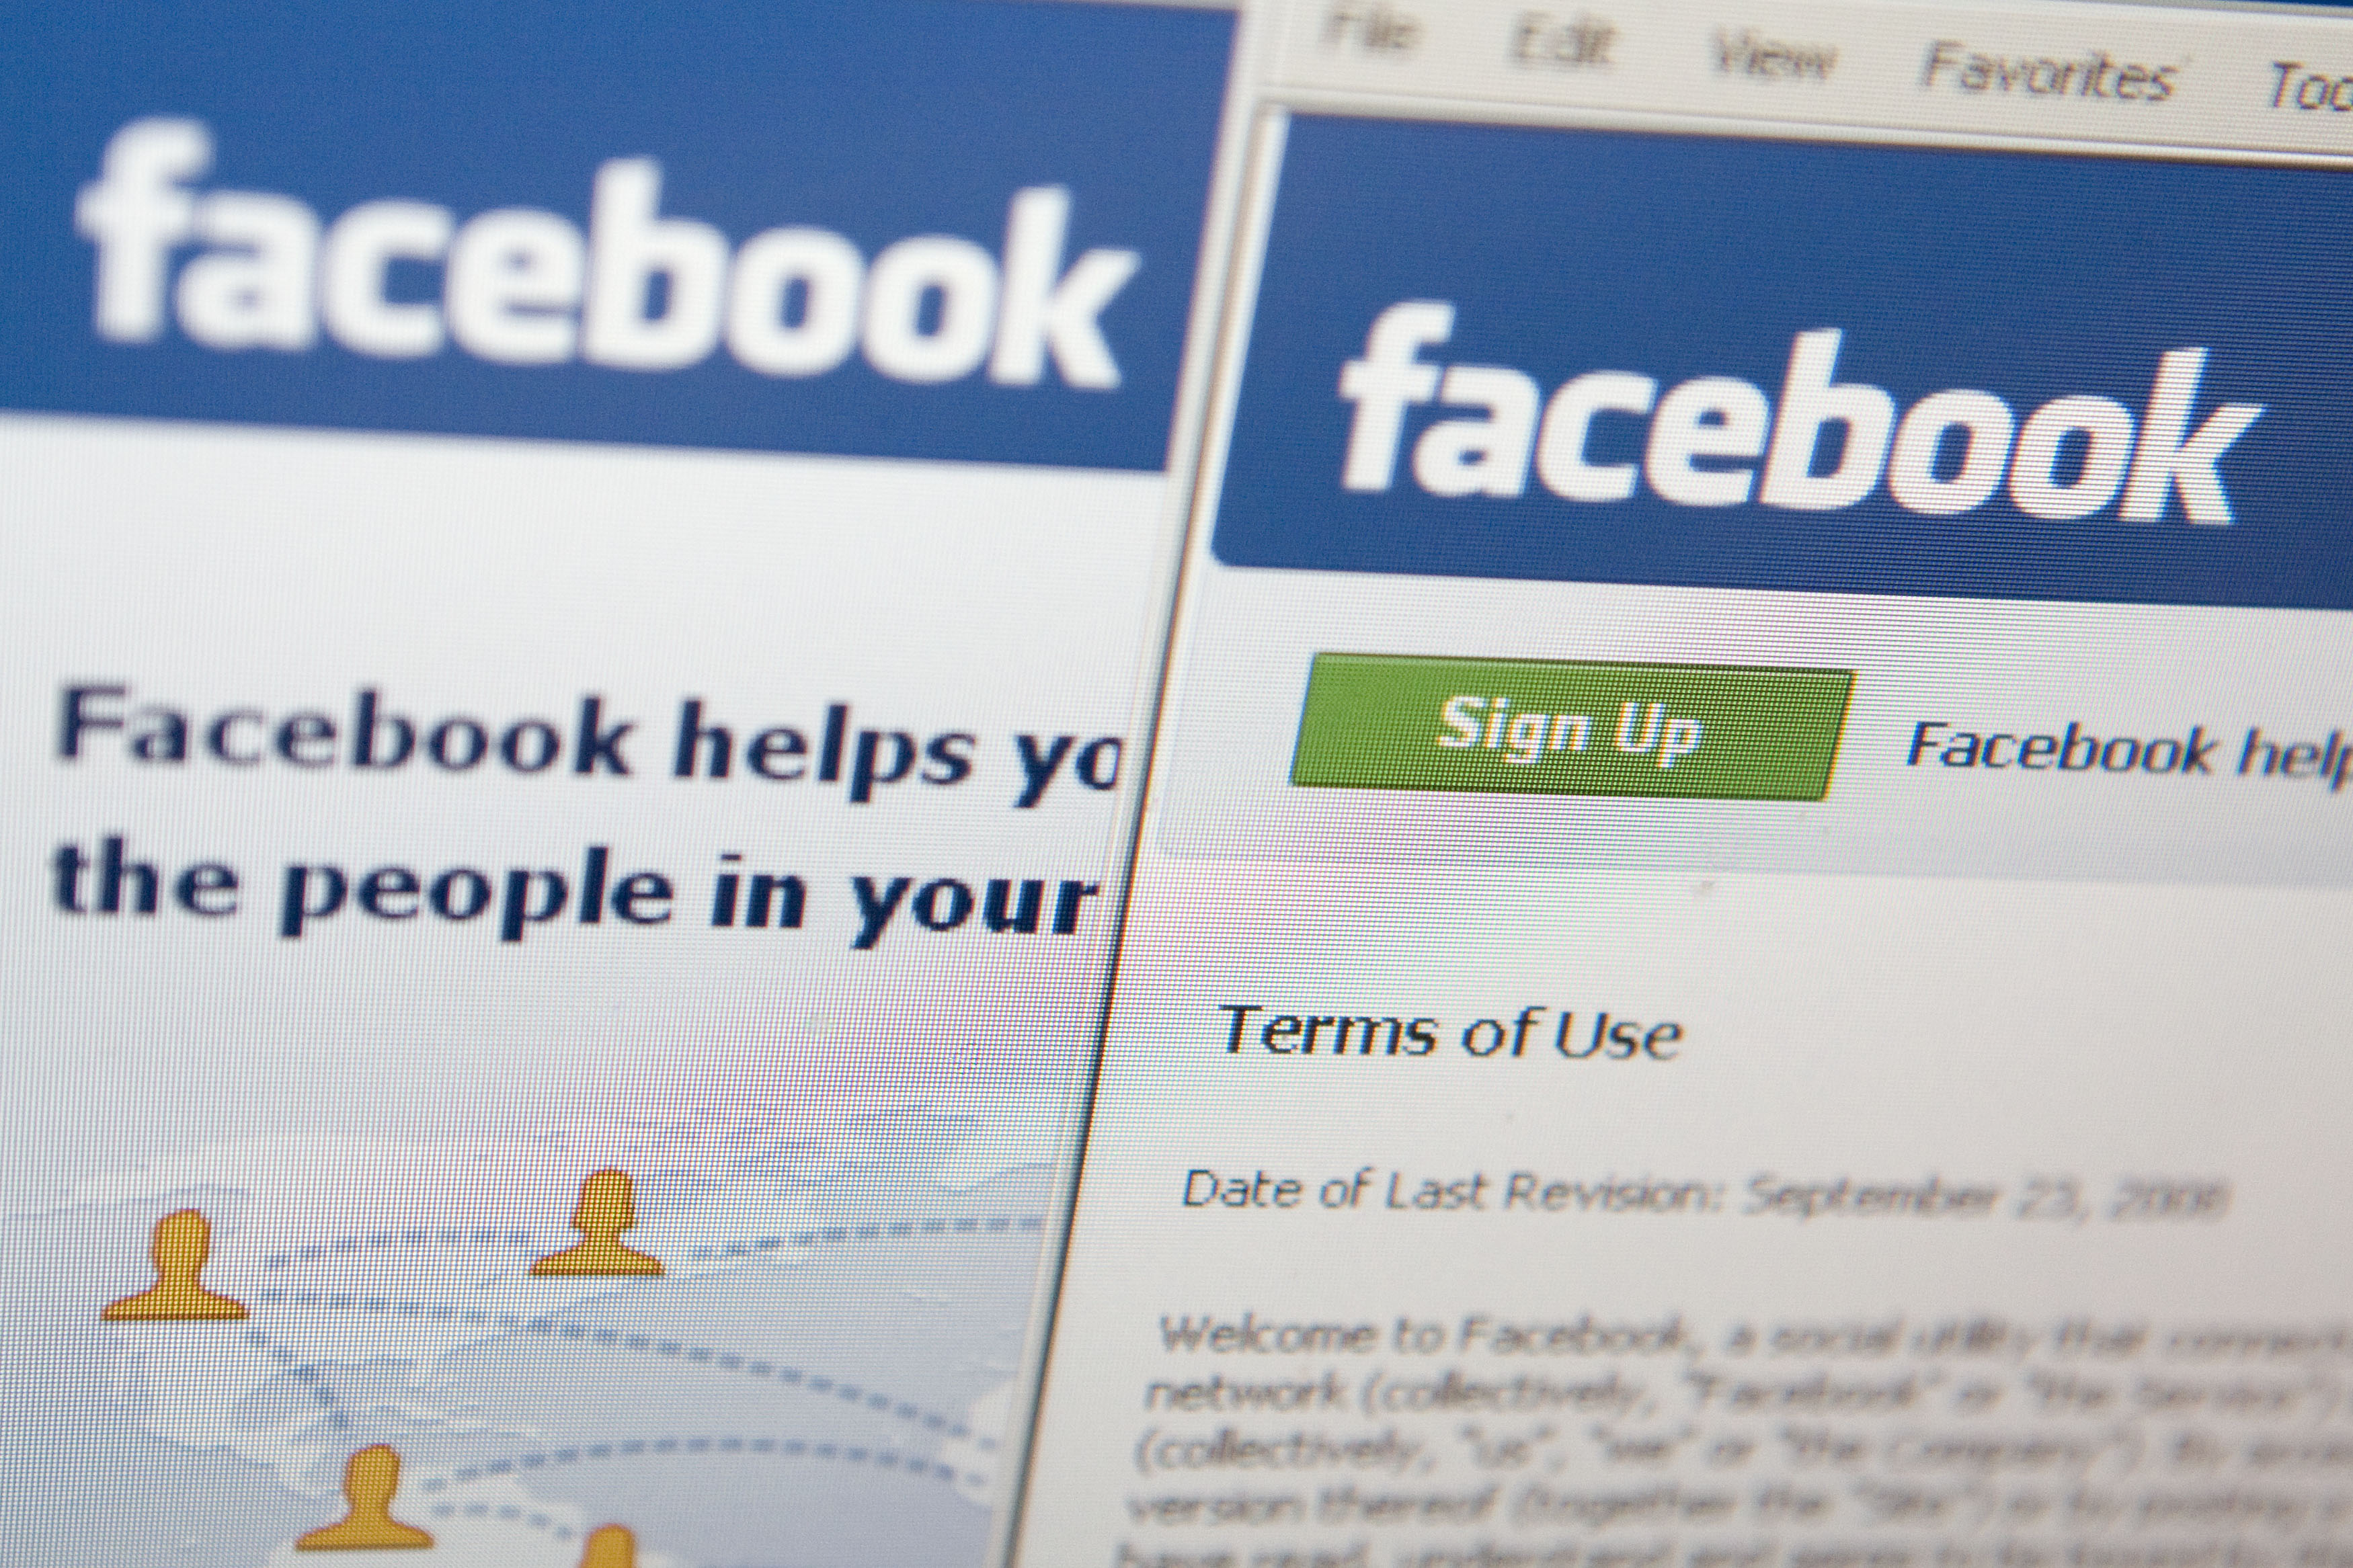 The Facebook terms of use are displayed on a computer monito